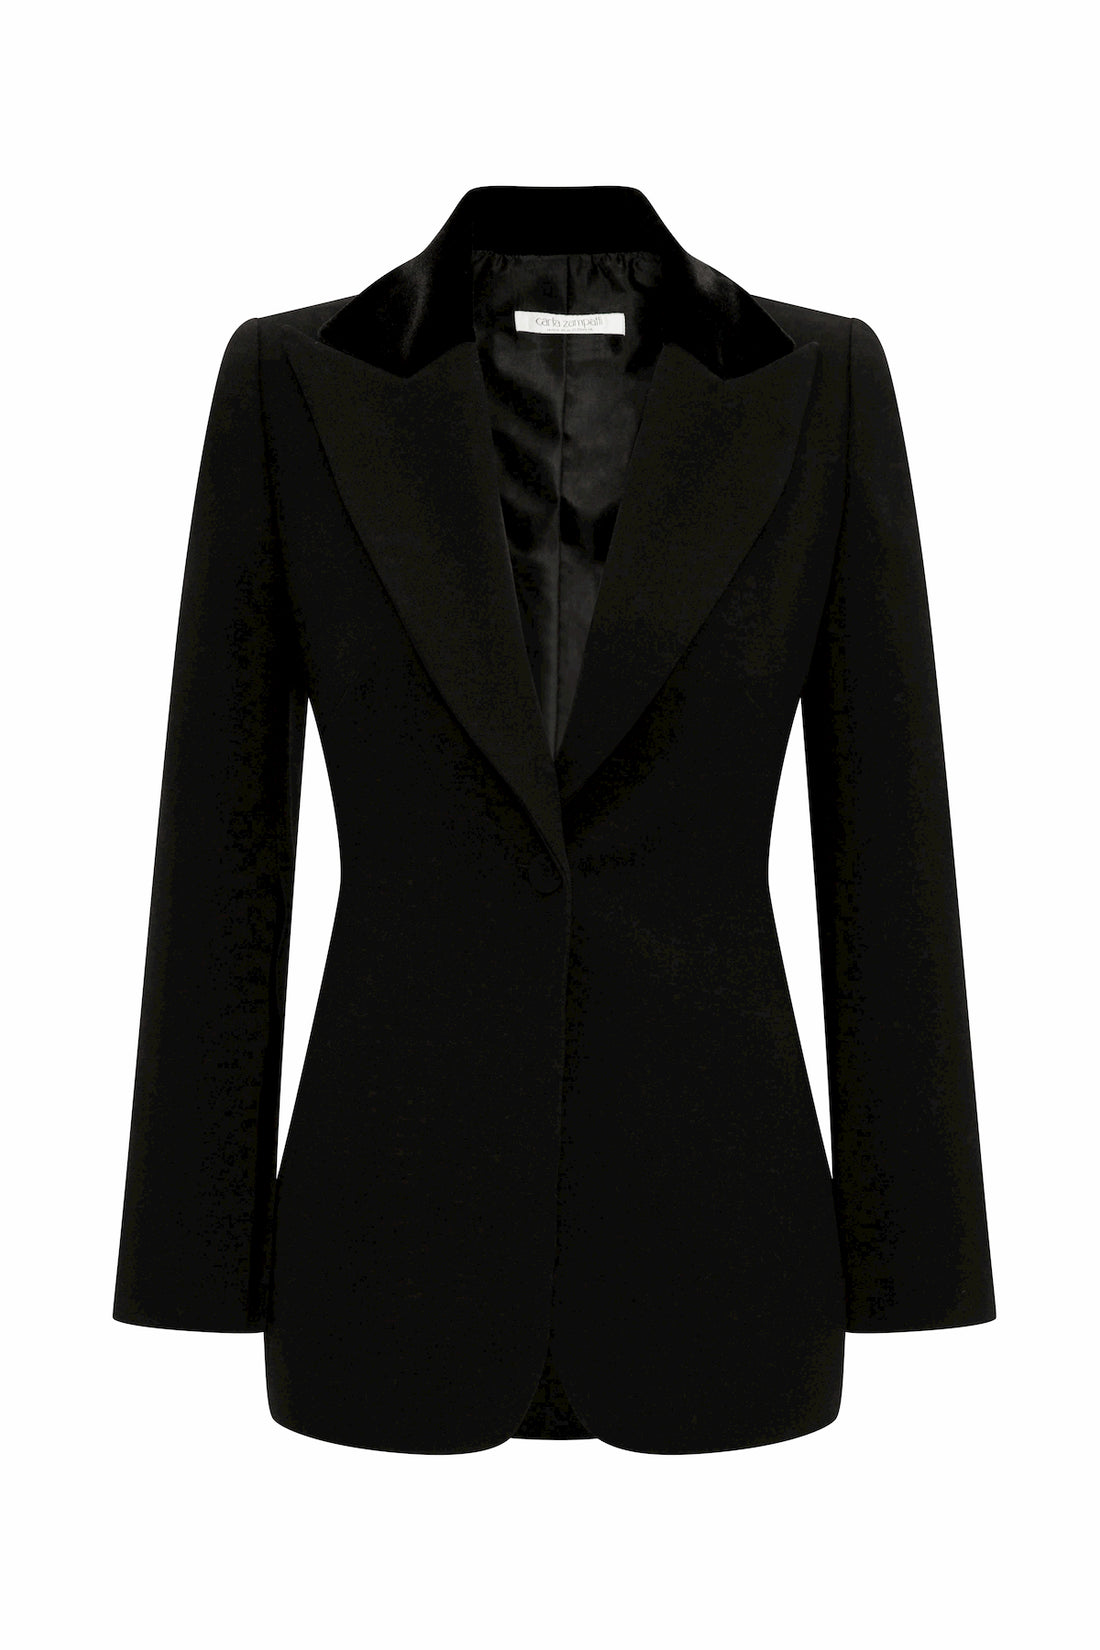 BLACK TIMELESS CLASSIC JACKET